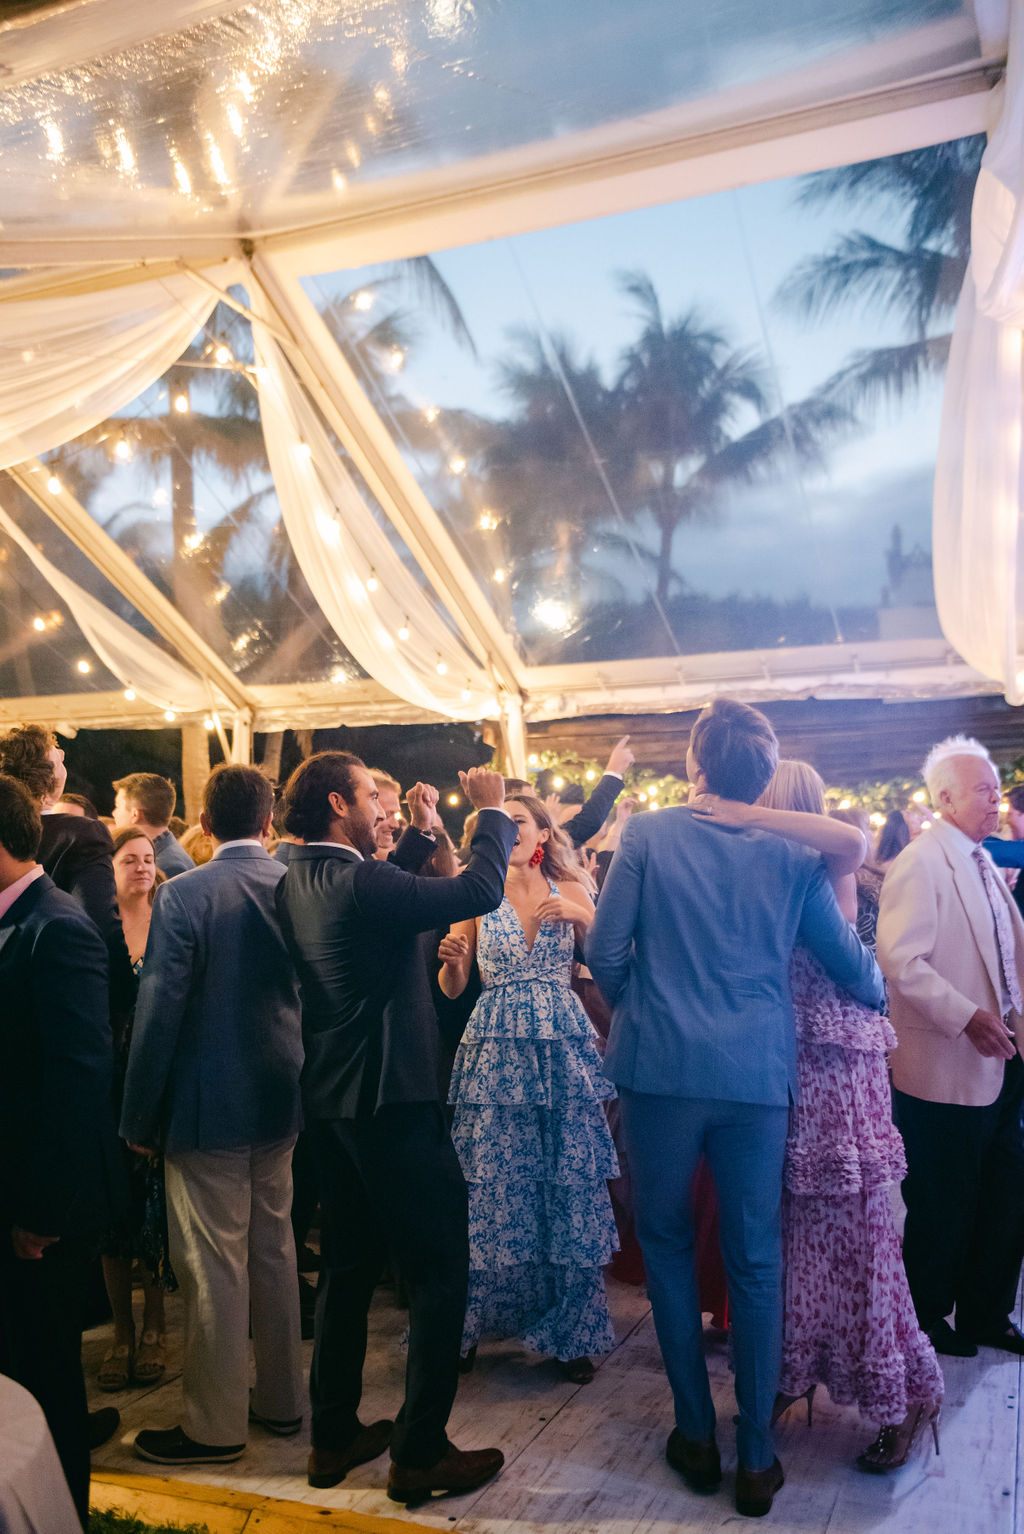 guests dancing under lit wedding tent at reception